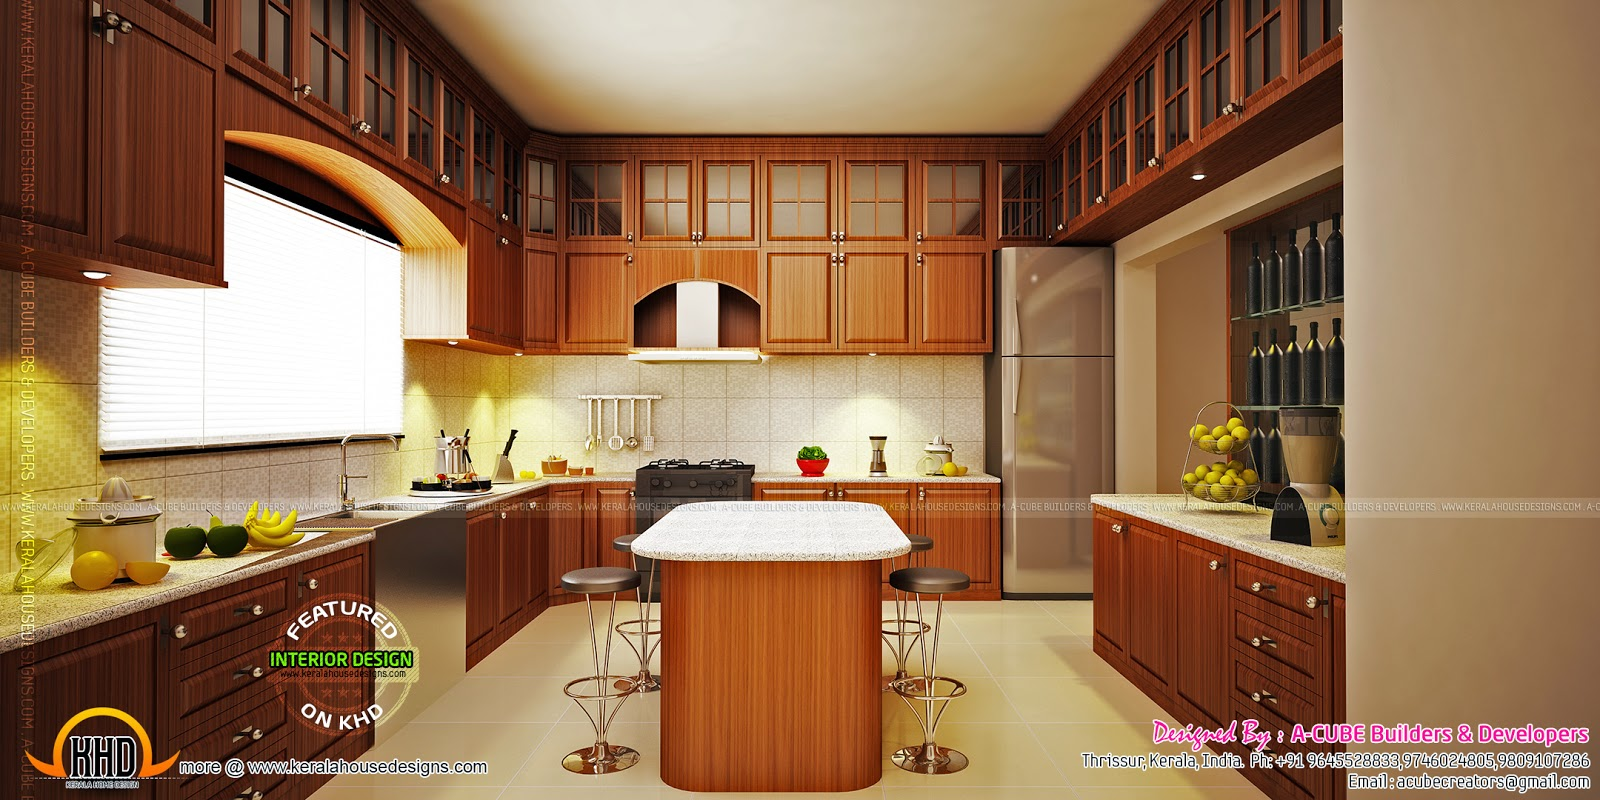 Modern Modular Kitchen Designs Nmedia Com With Kerala Interior Design  Kerala Kitchen Interior Design Simple Mesmerizing